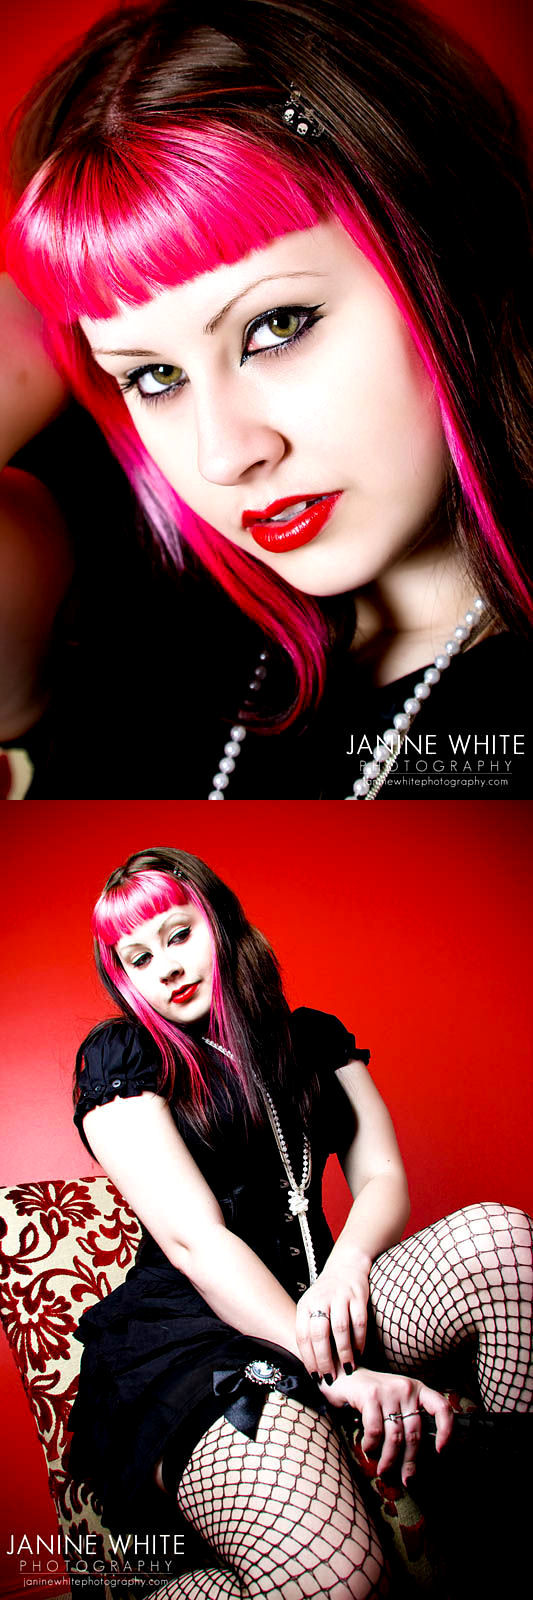 Female model photo shoot of DeadDollyX by JanineWhite Photography